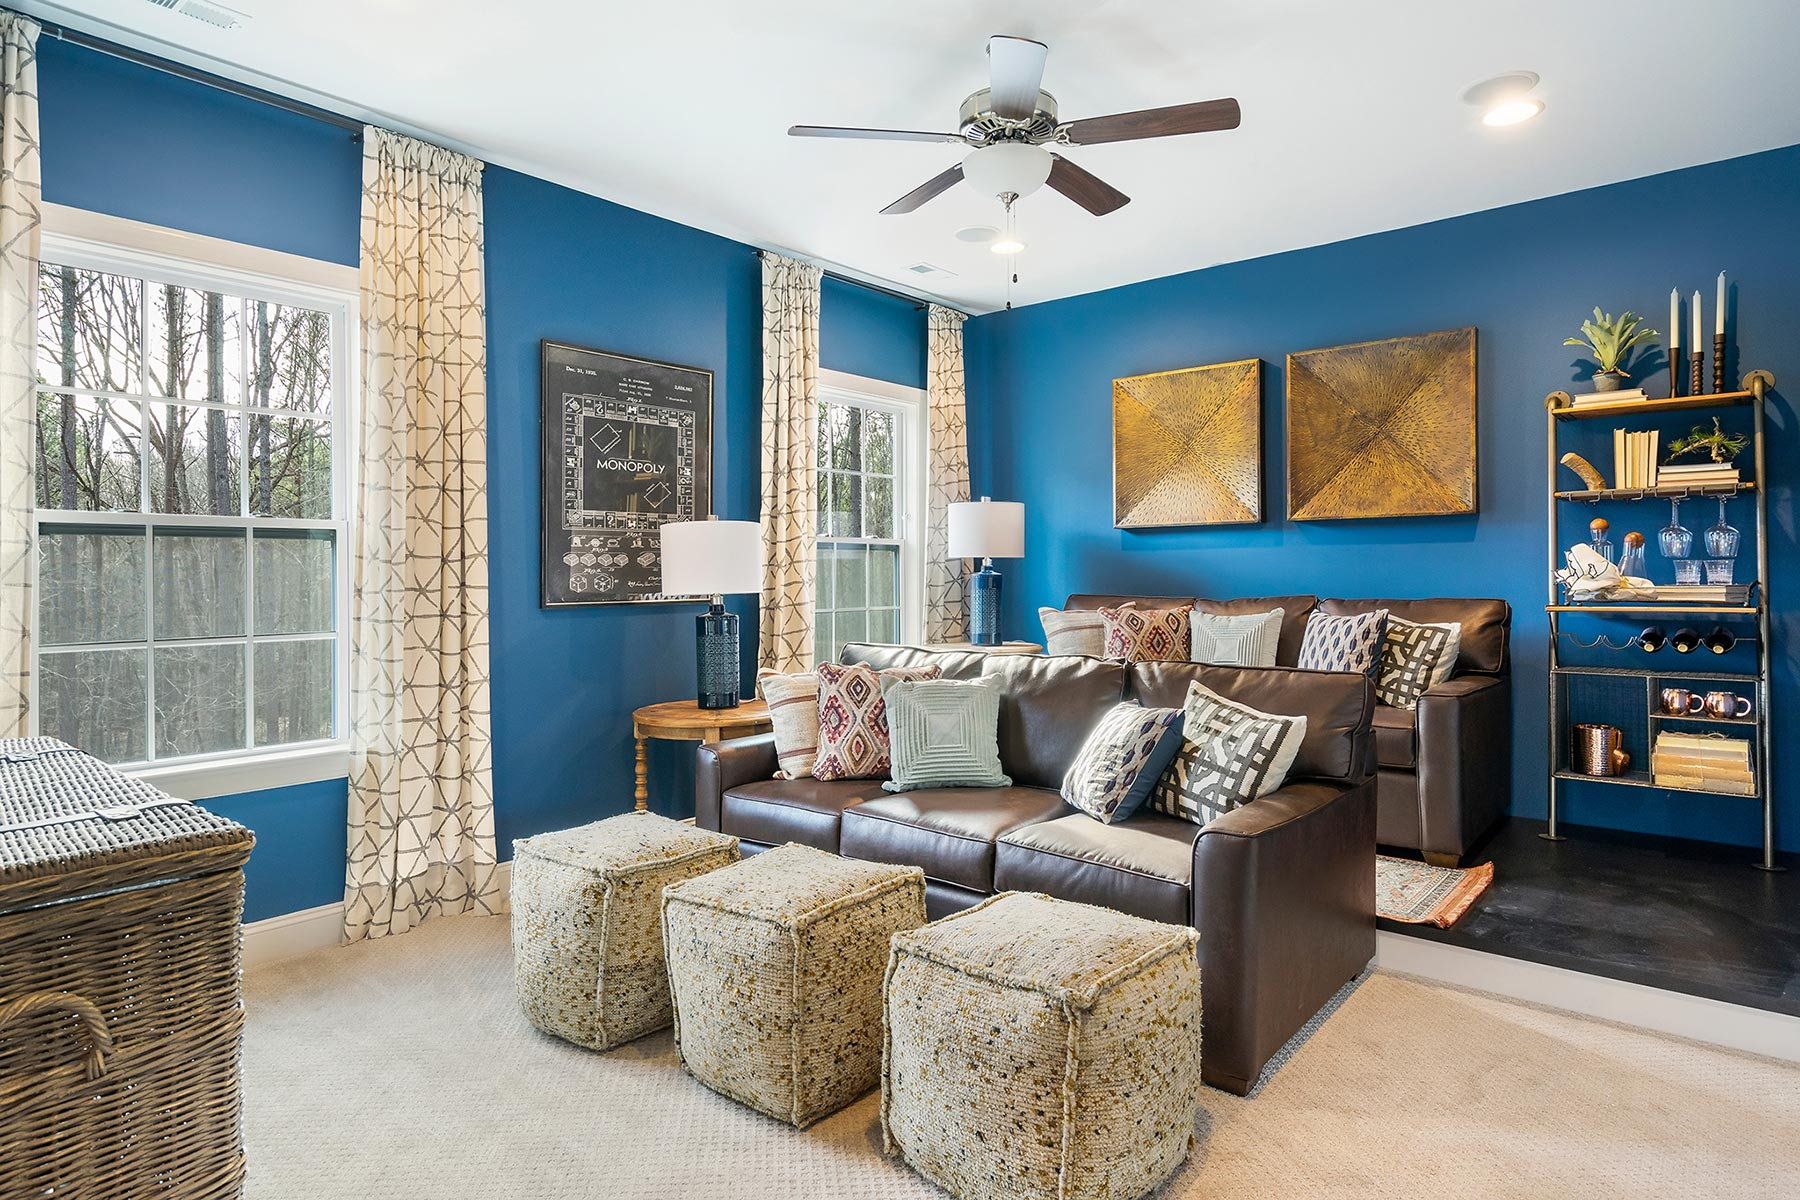 Edenton Plan Media Room at Ballentine Place in Holly Springs North Carolina by Mattamy Homes